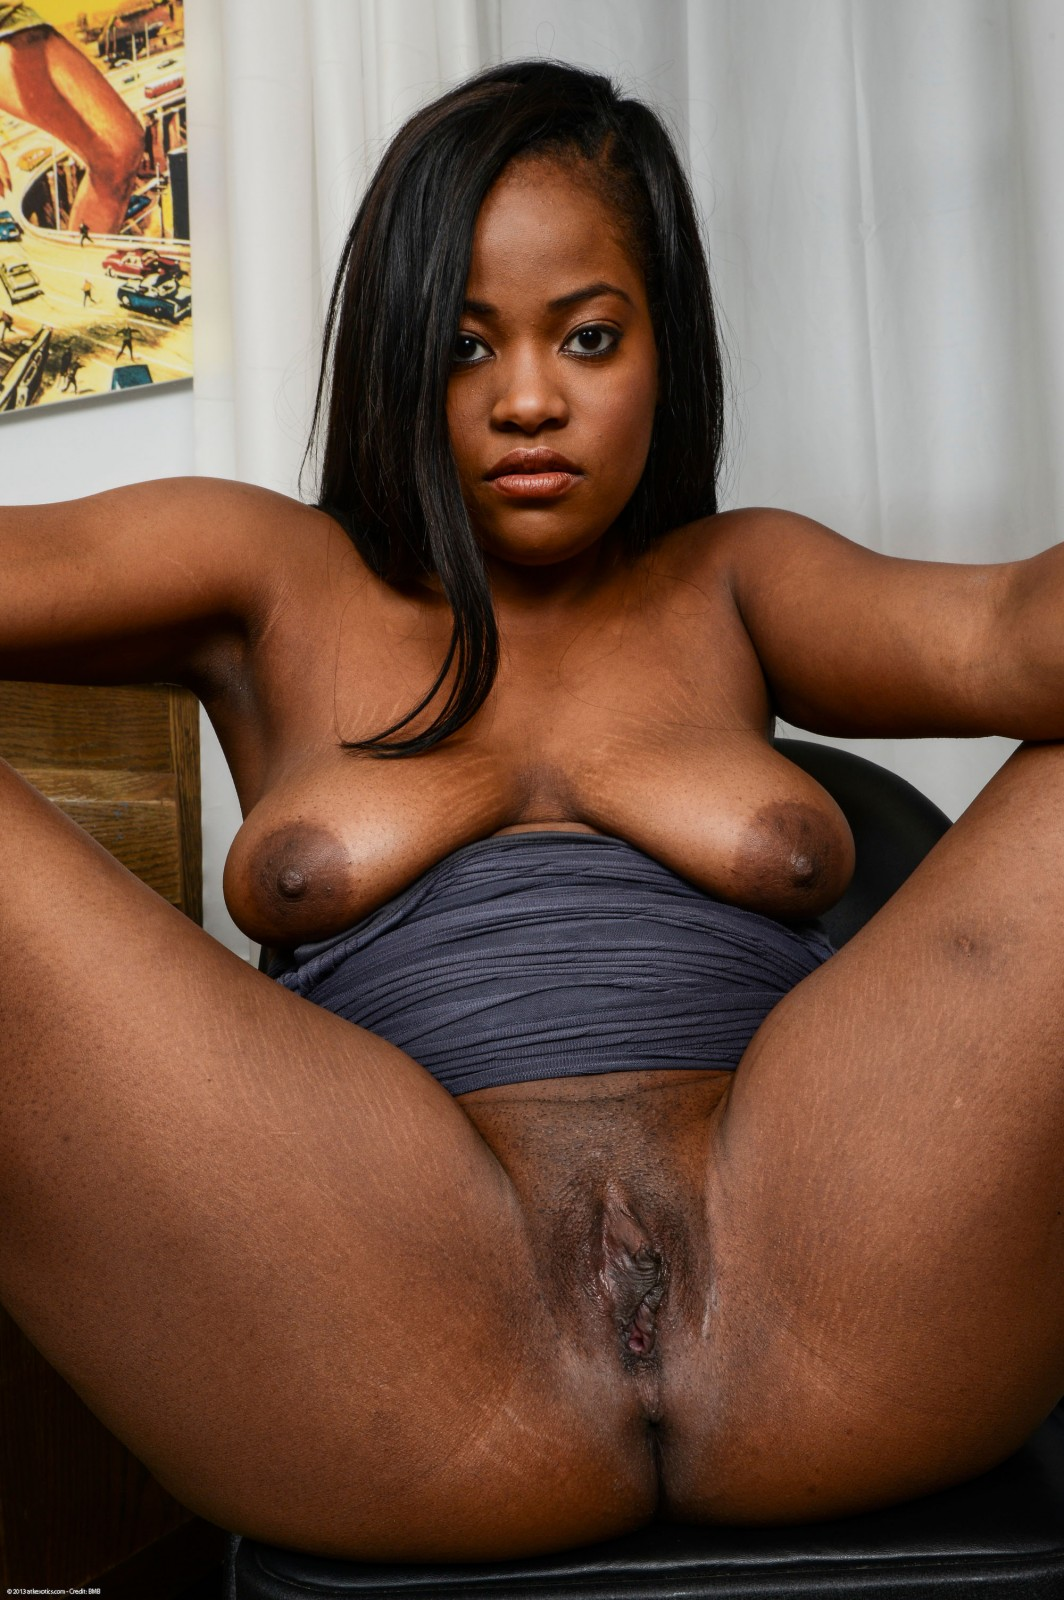 Naked raven only symone